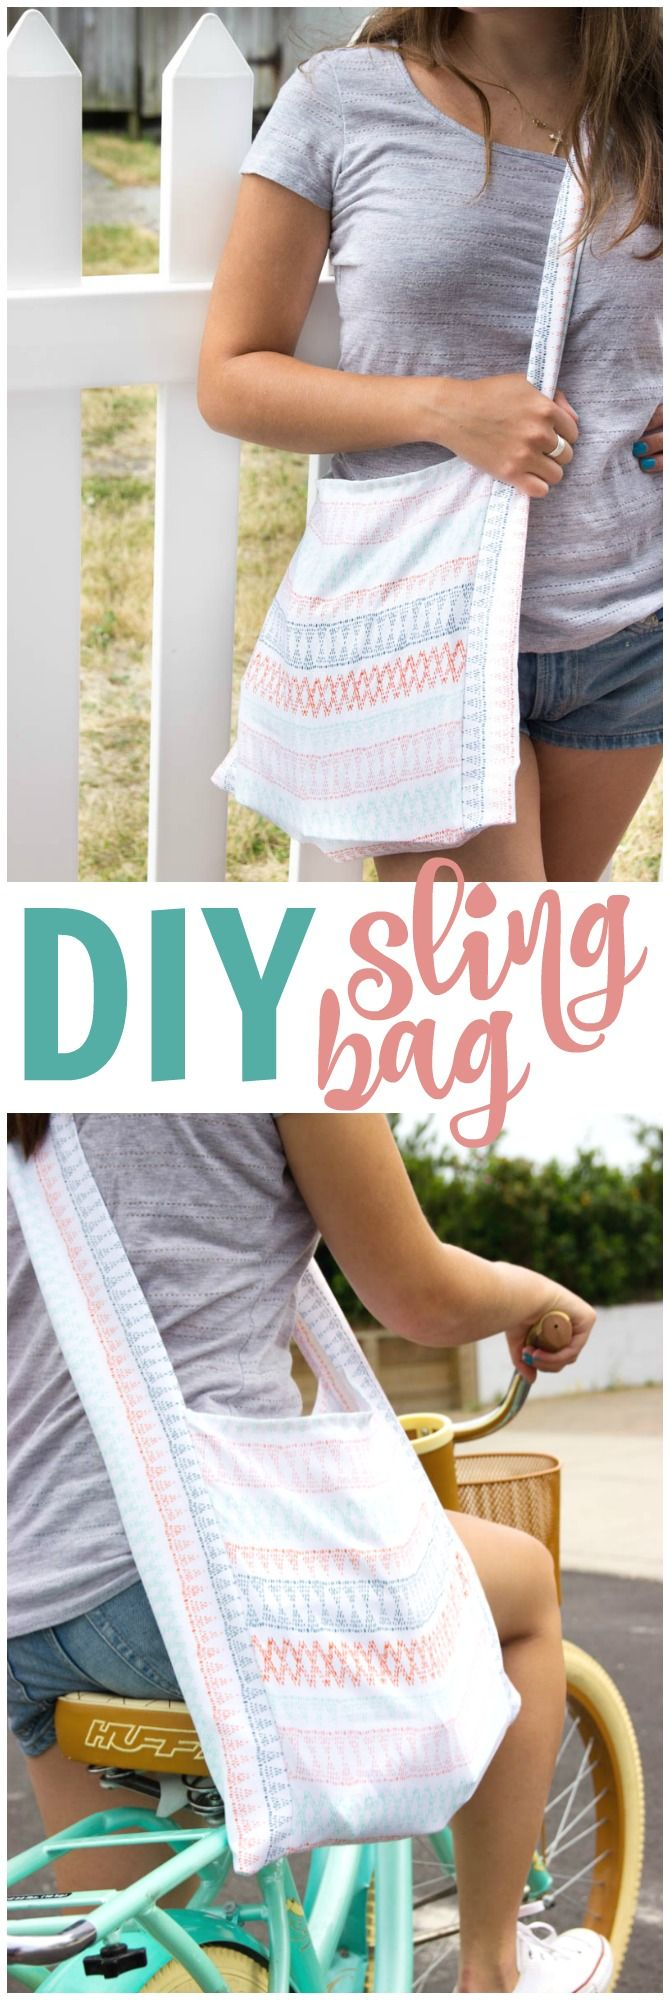 I'm going to share with you how to sew a DIY sling bag that will  be perfect f...